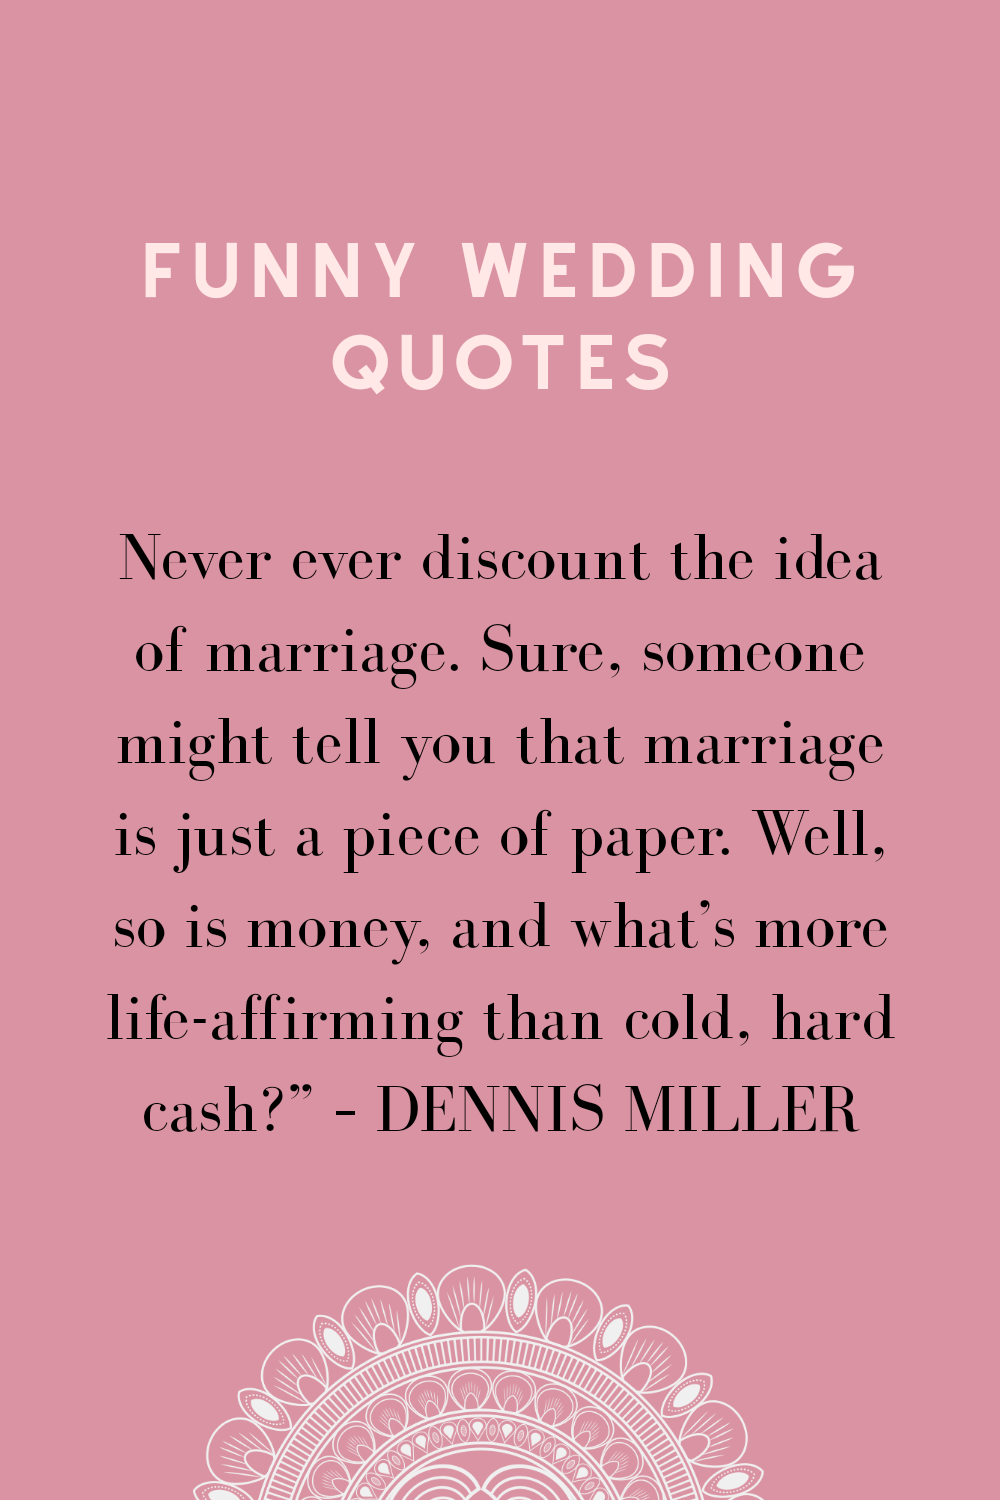 52 Funny Marriage quotes KISS THE BRIDE MAGAZINE in 2020